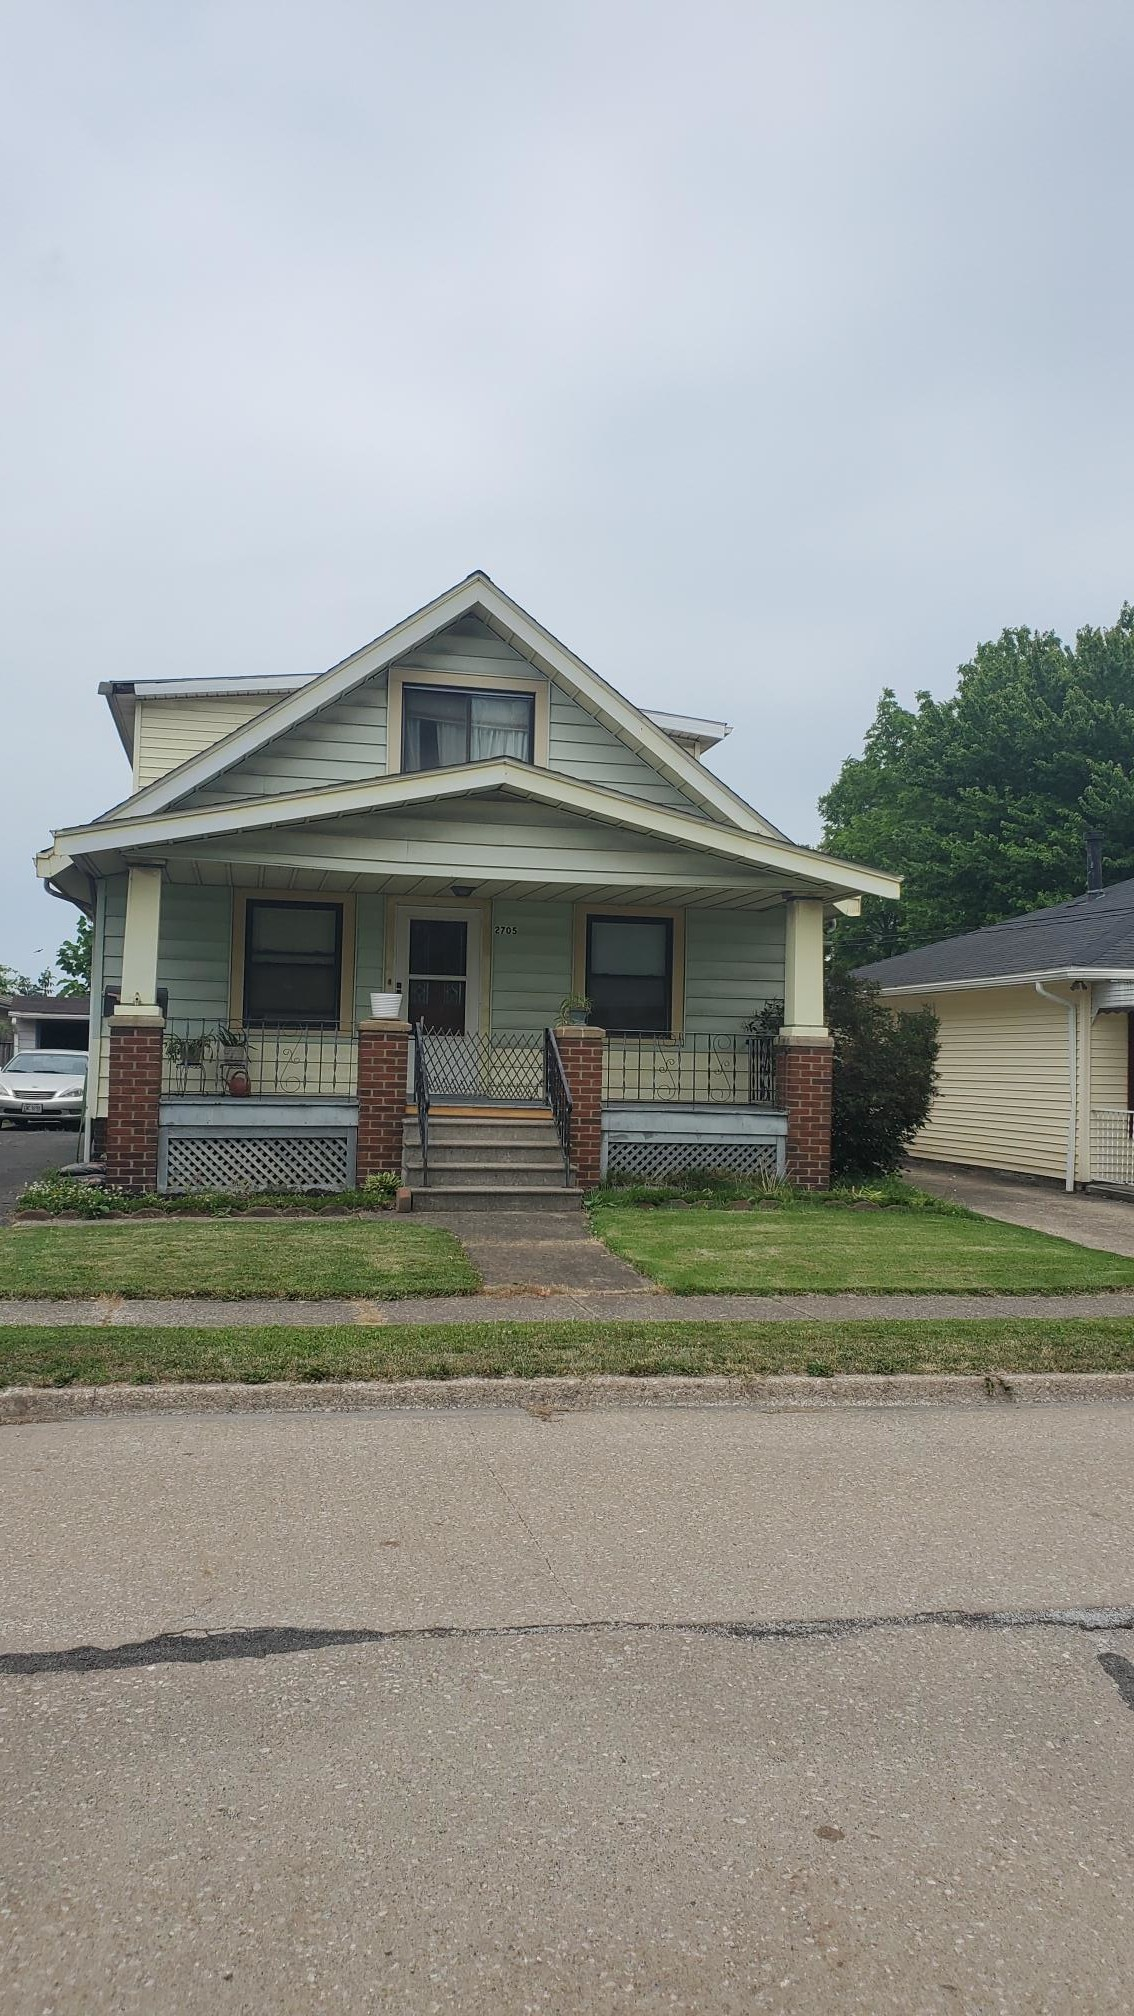 4-Bedroom House In South Broadway